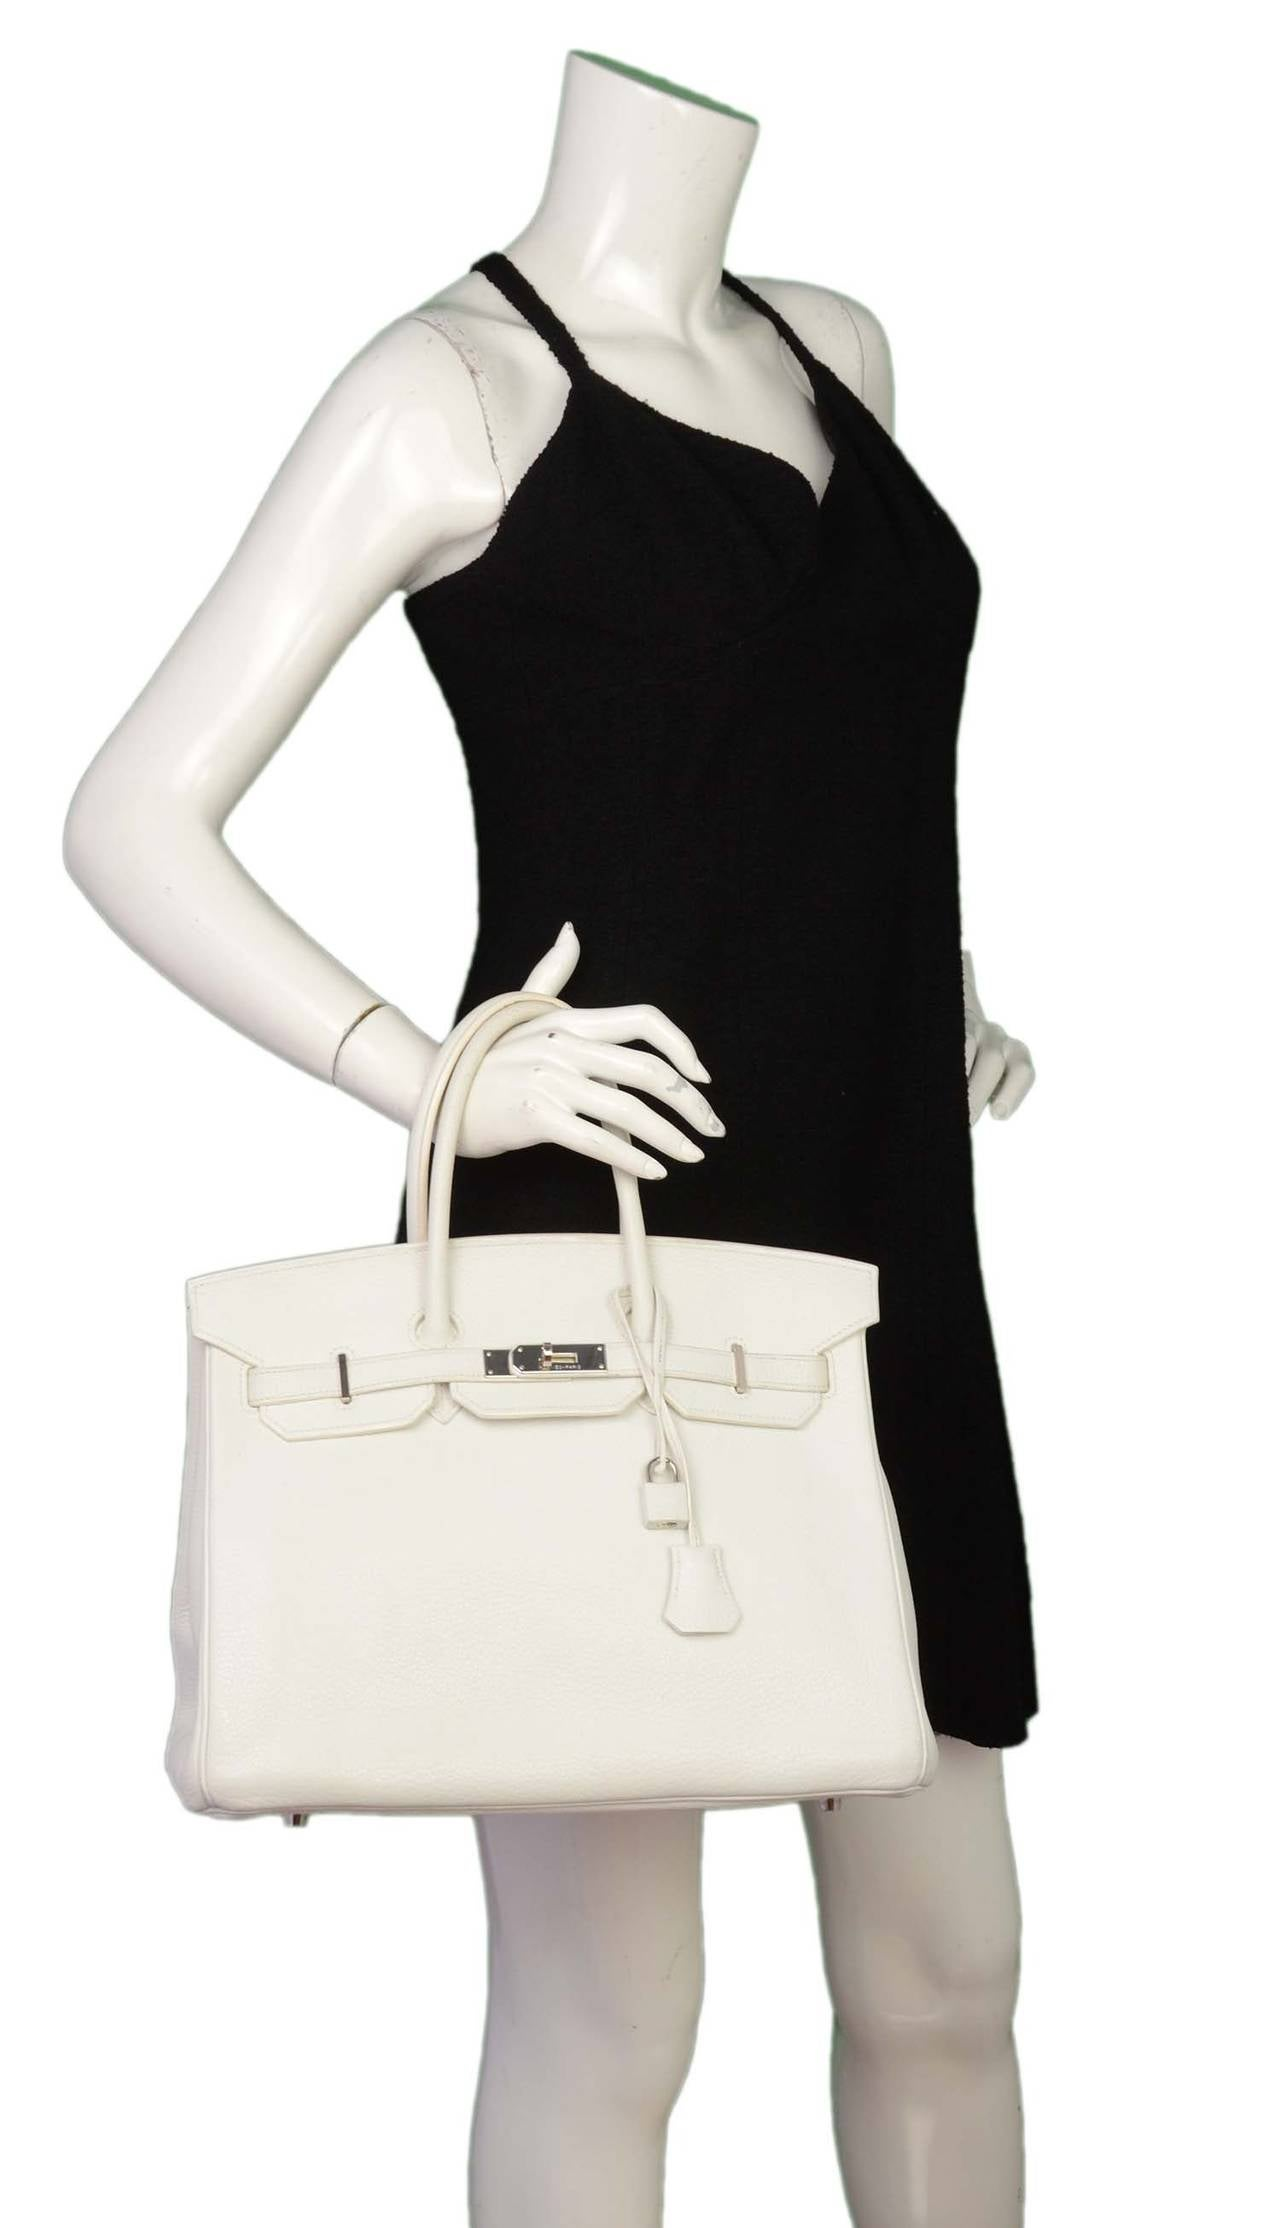 cheap hermes bags replica - HERMES 2007 White Clemence Leather 35 cm Birkin Bag at 1stdibs